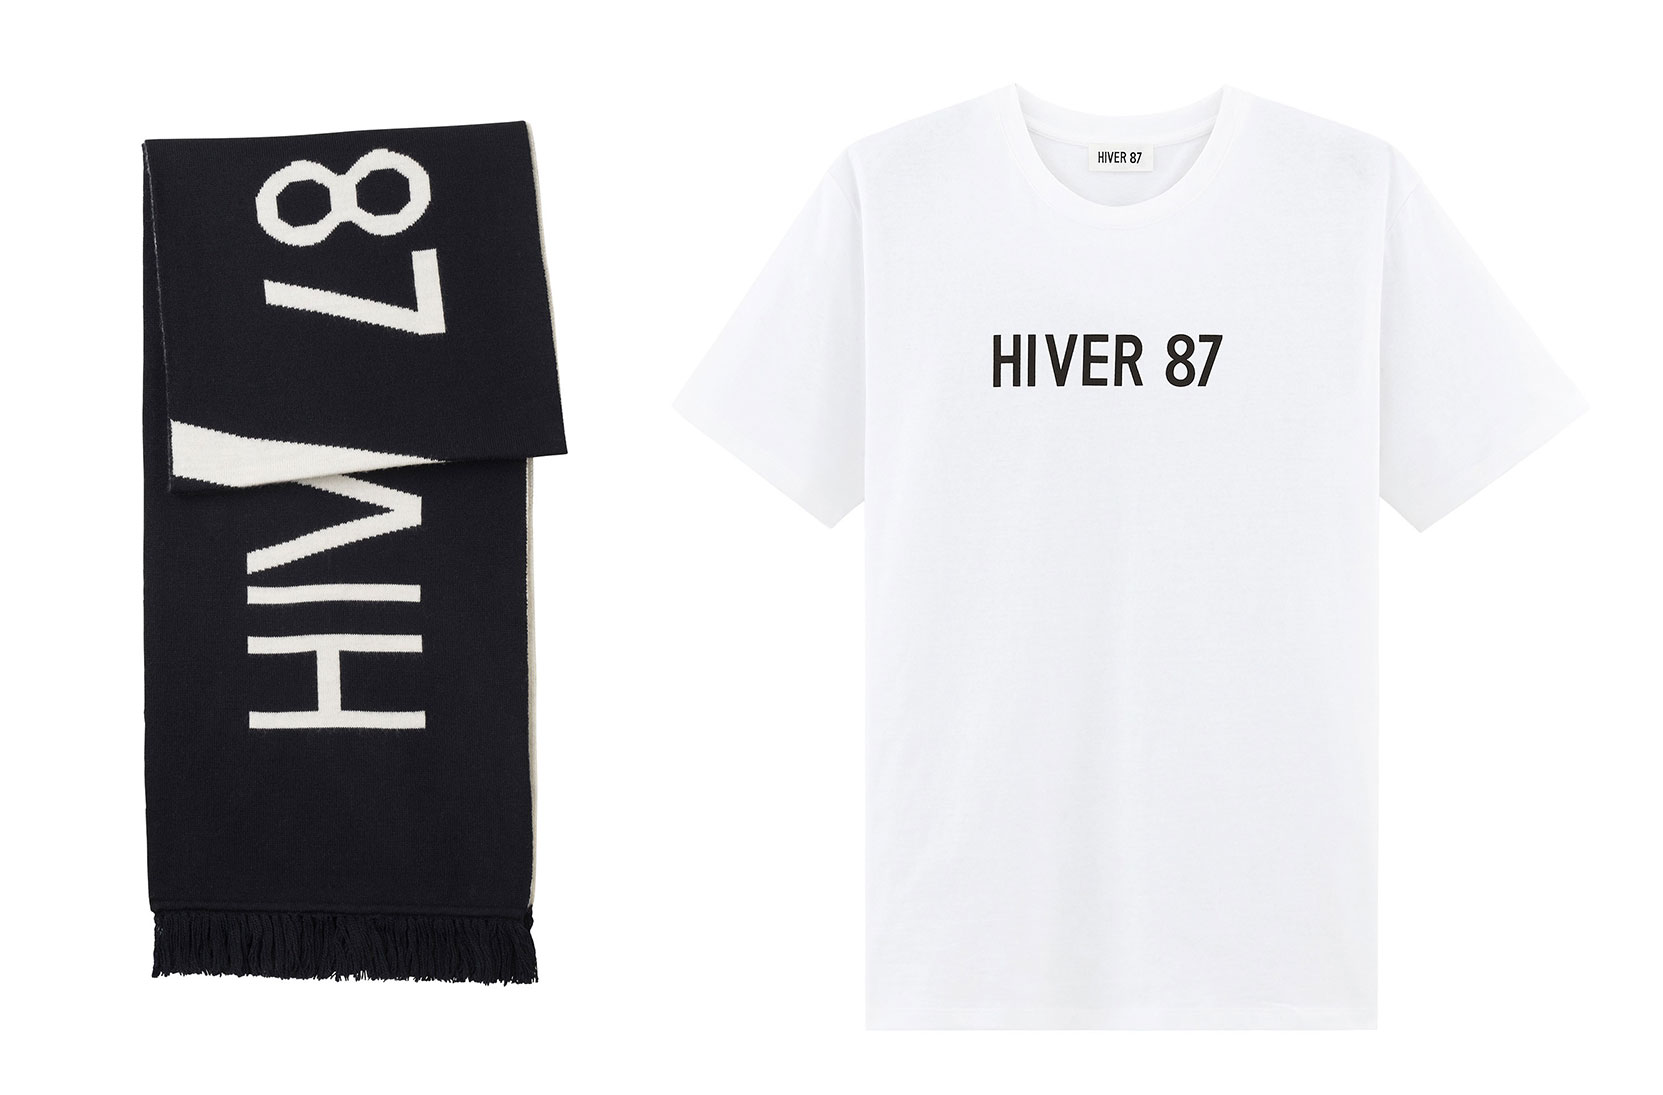 Items from A.P.C.'s new HIVER 87 capsule collection. Images courtesy of apc.fr